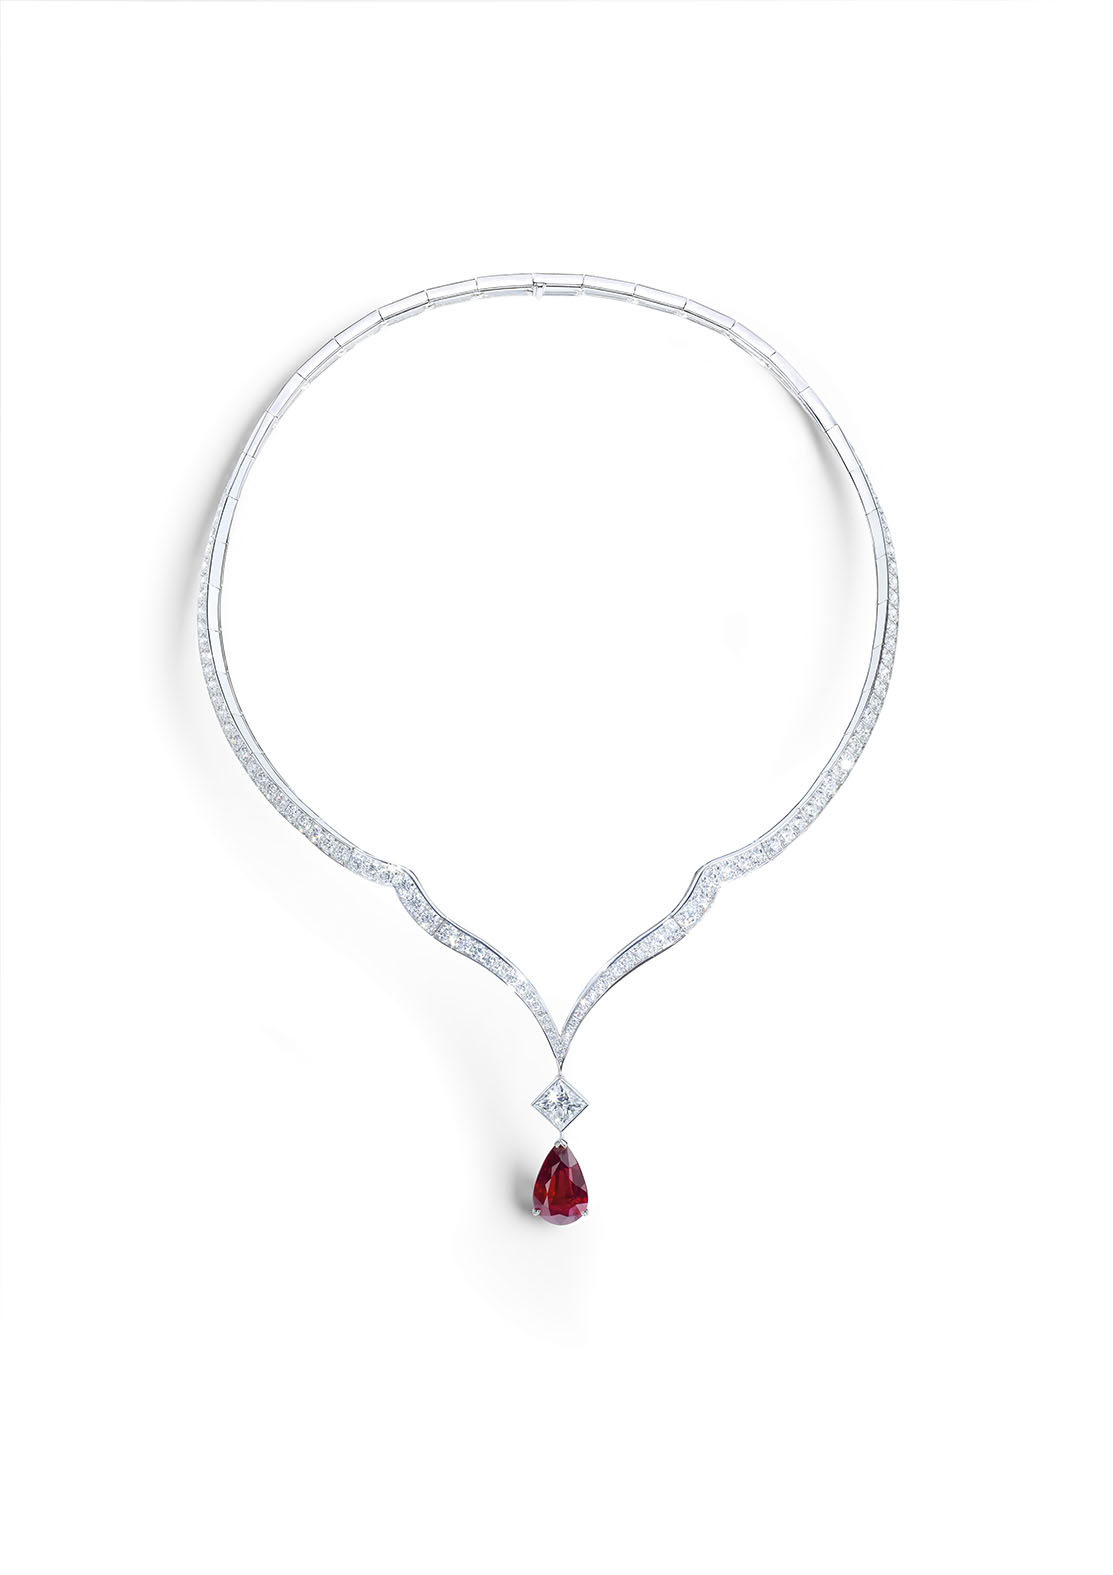 Necklace in 18K white gold set with 1 pear-shaped ruby (approx. 7.01 cts), 1 princess-cut diamond (approx. 1.73 cts) and 143 brilliant-cut diamonds (approx. 12.84 cts).